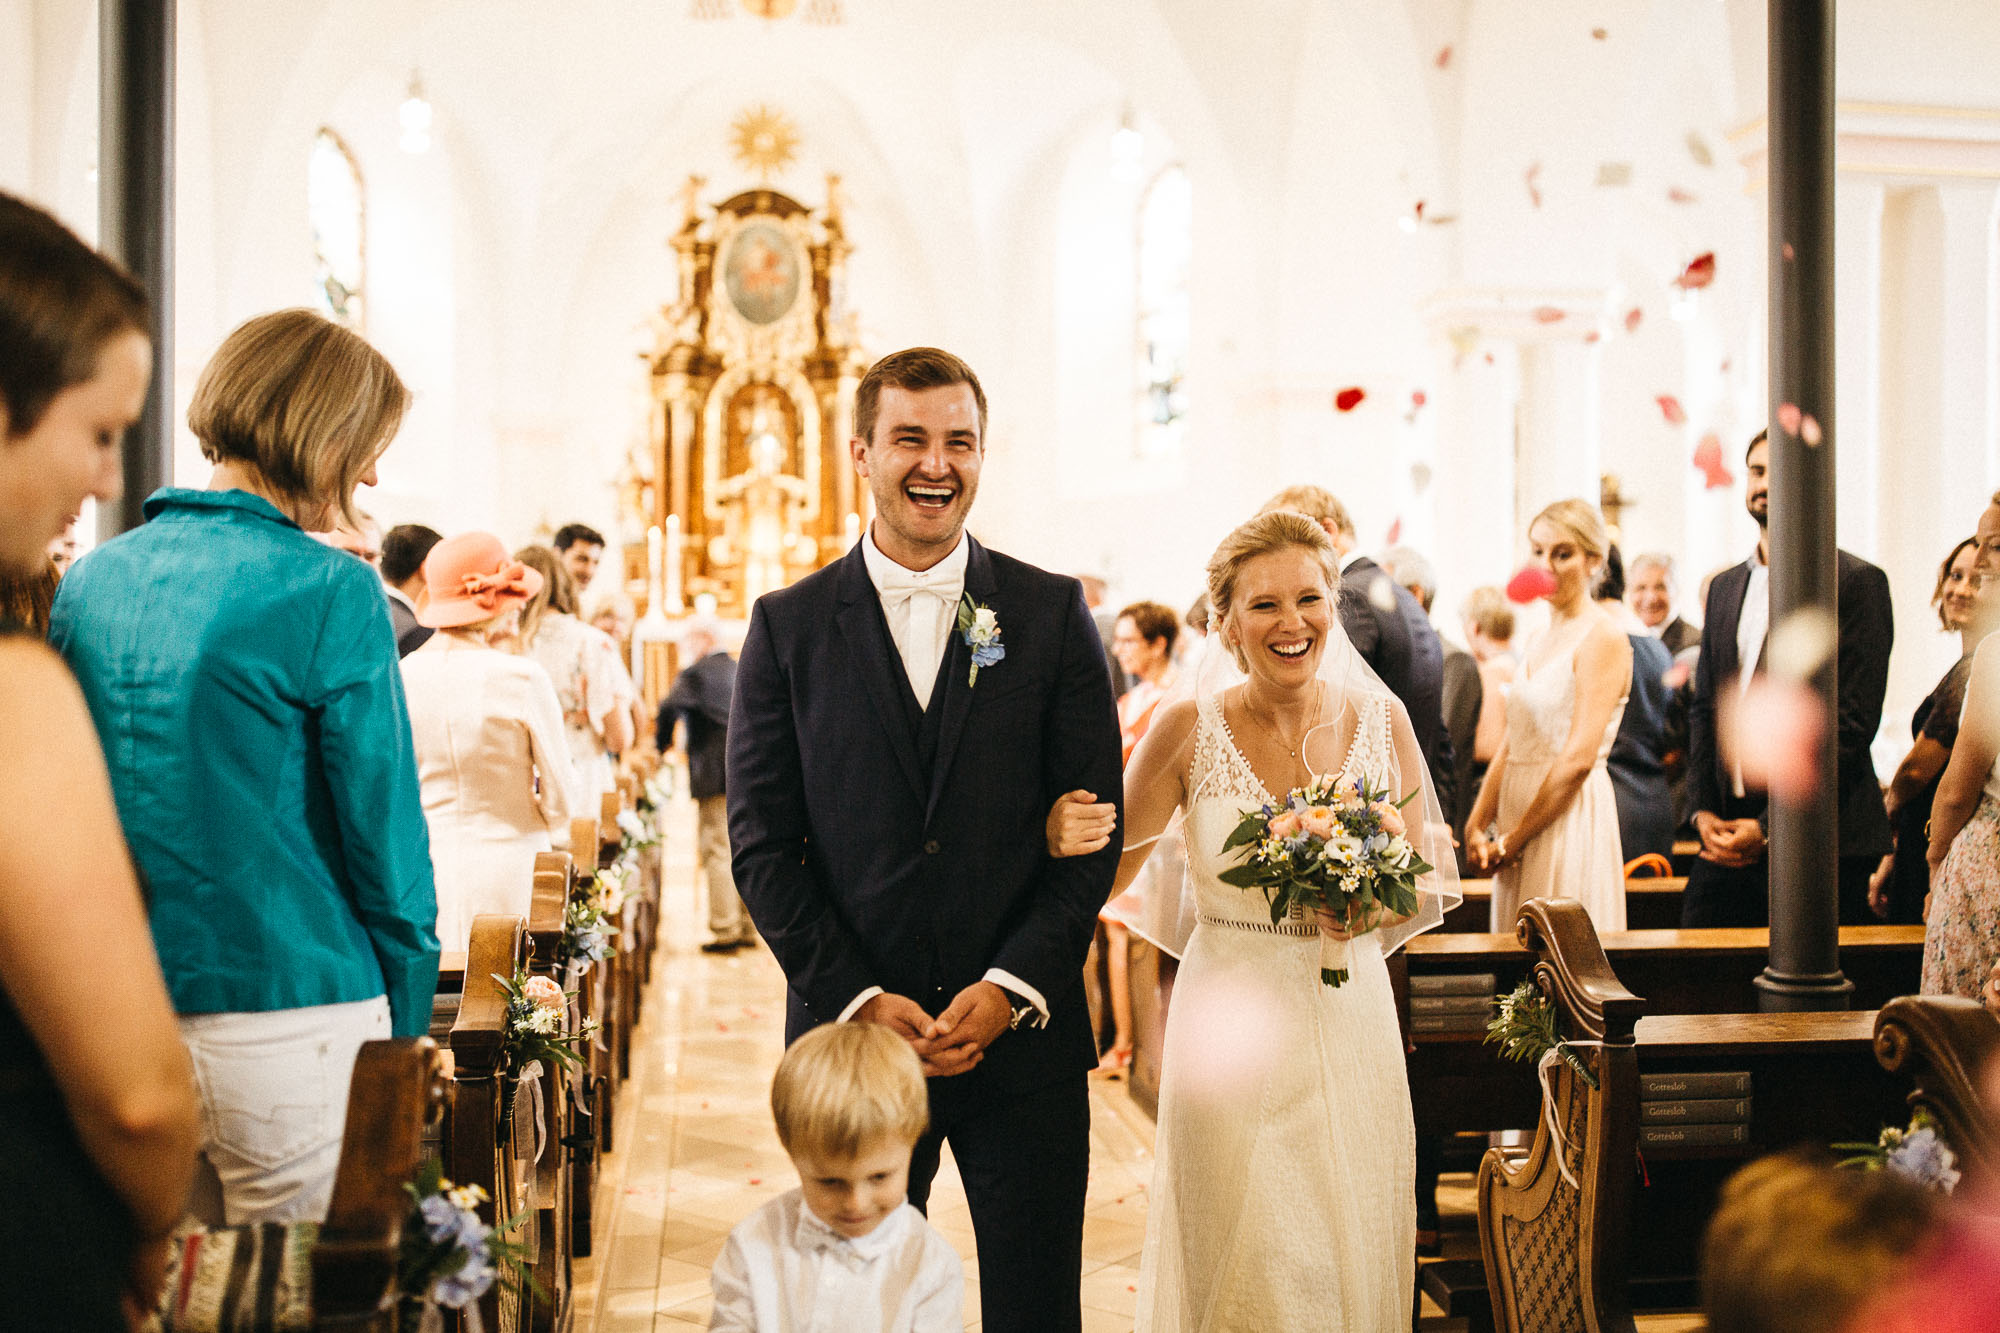 raissa simon photography wedding mosel kloster machern love authentic 229 - Kathrin + Dominik